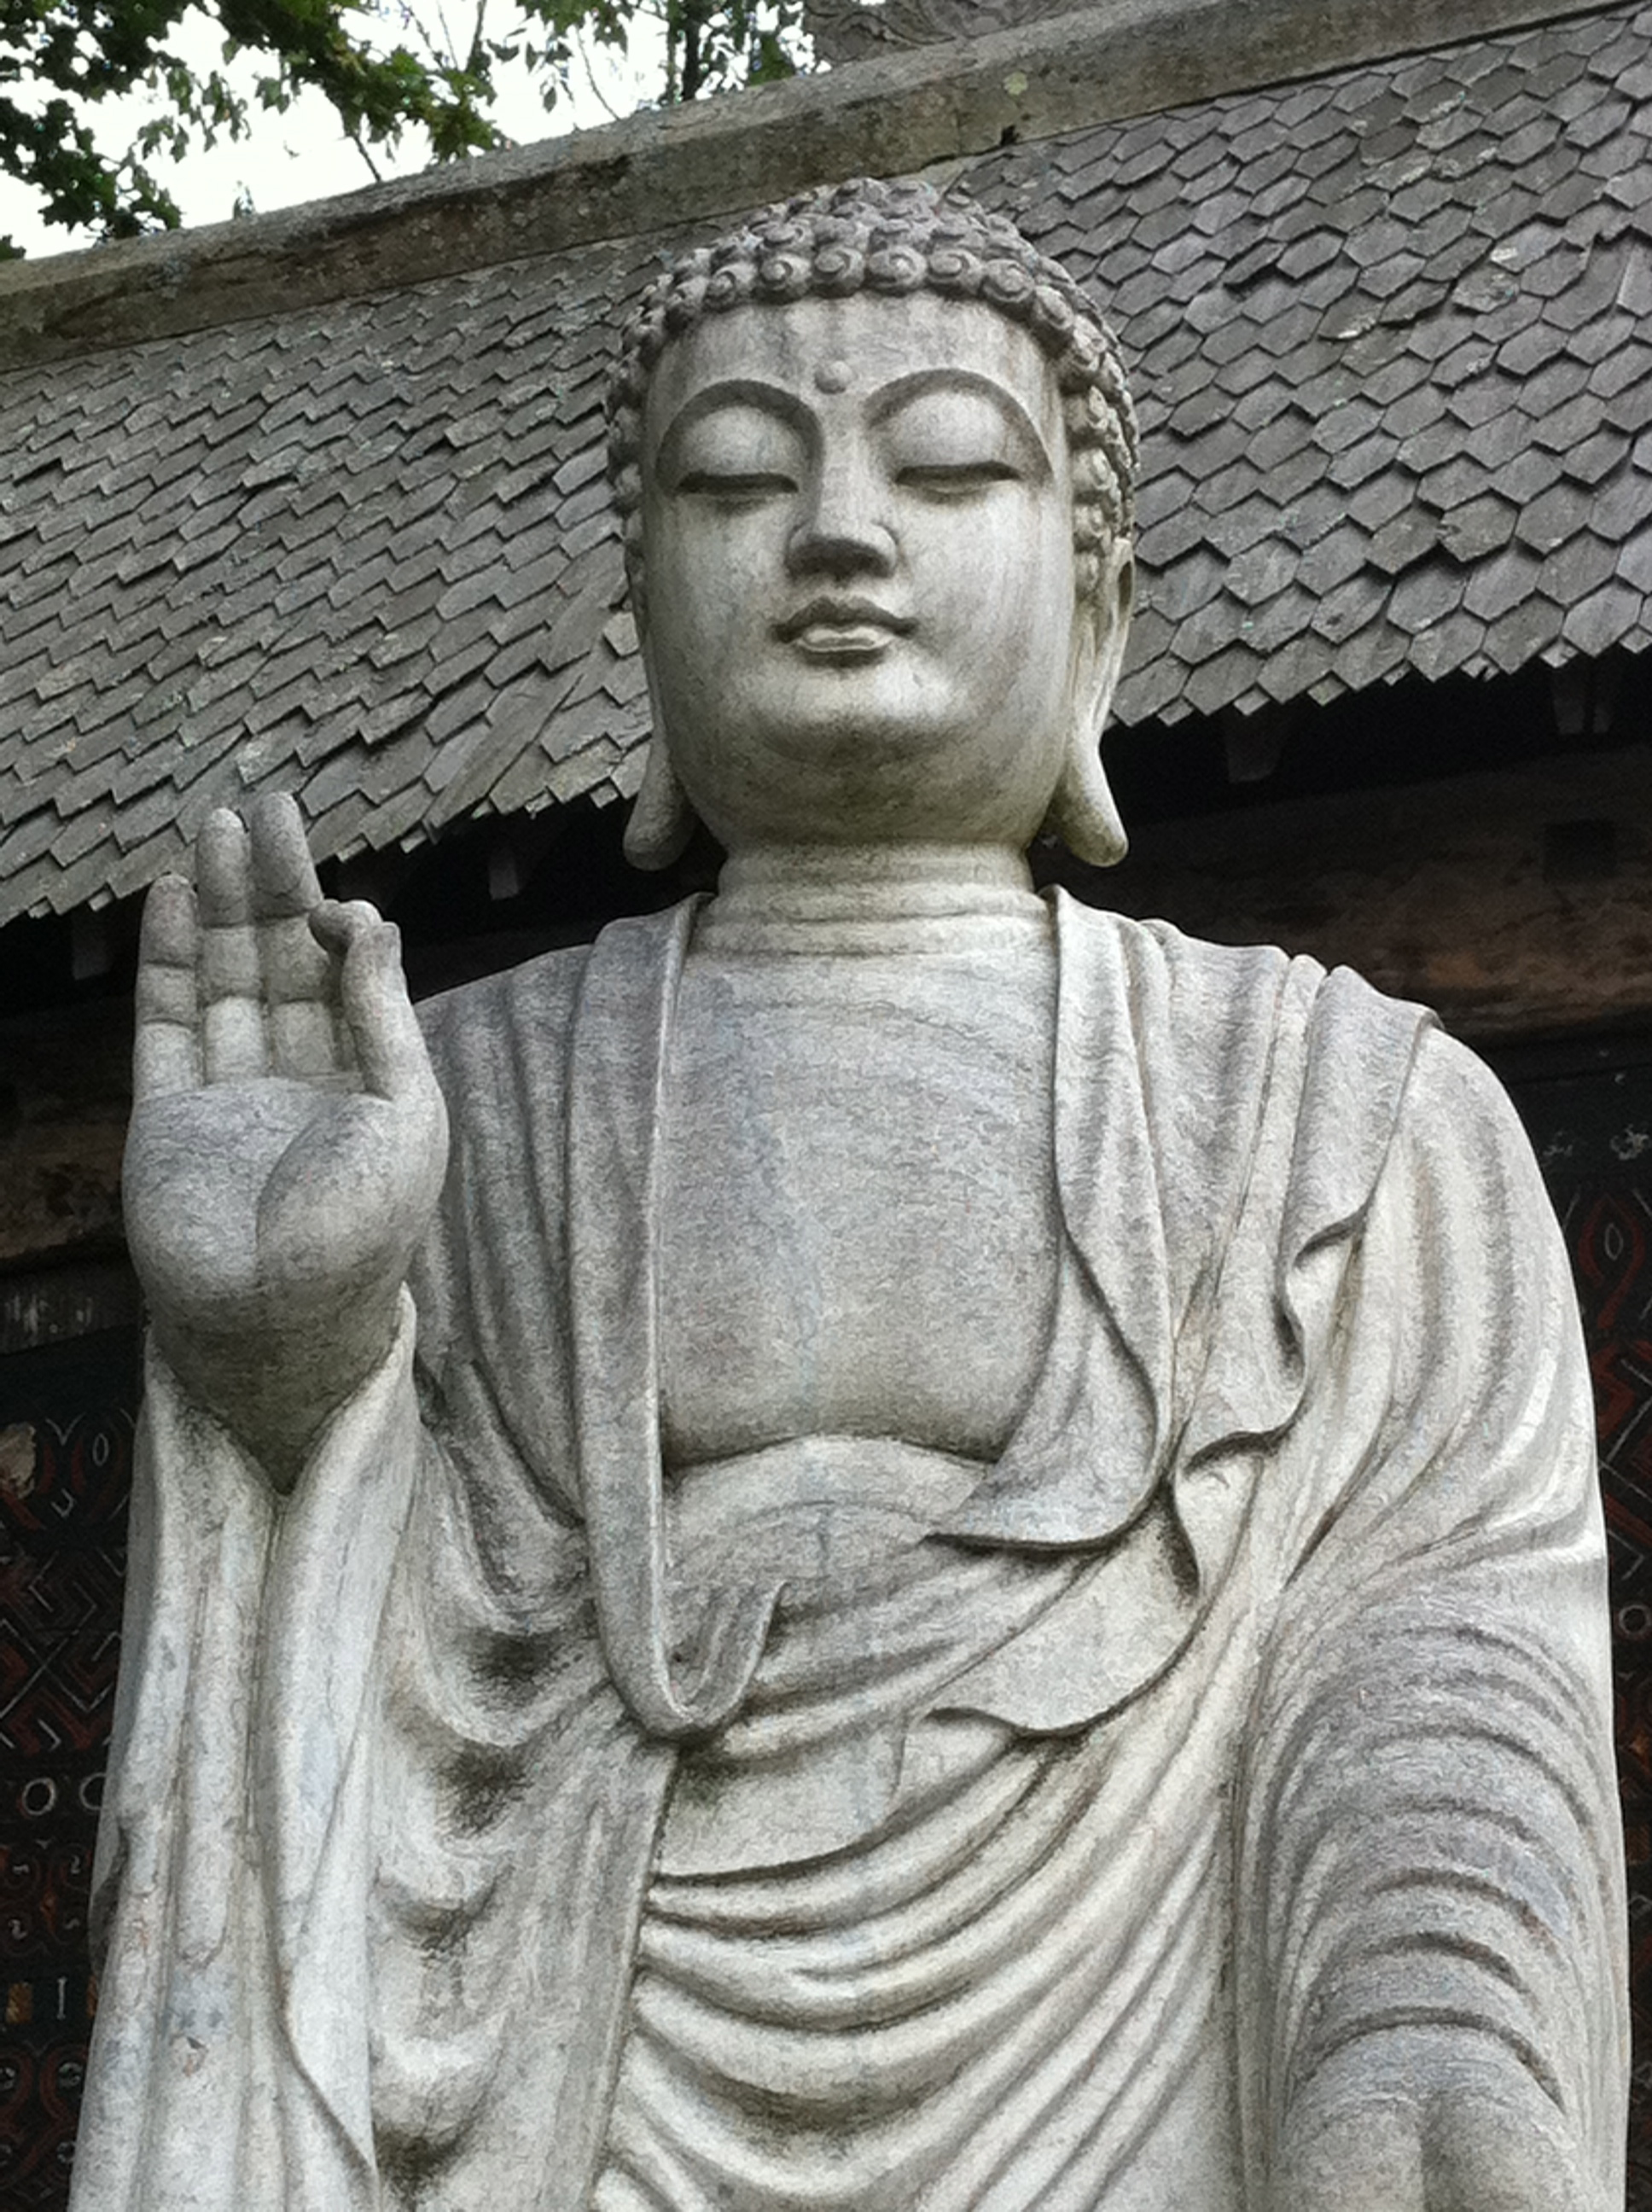 Order essay online cheap investigate the impact buddhism had on human rights in china